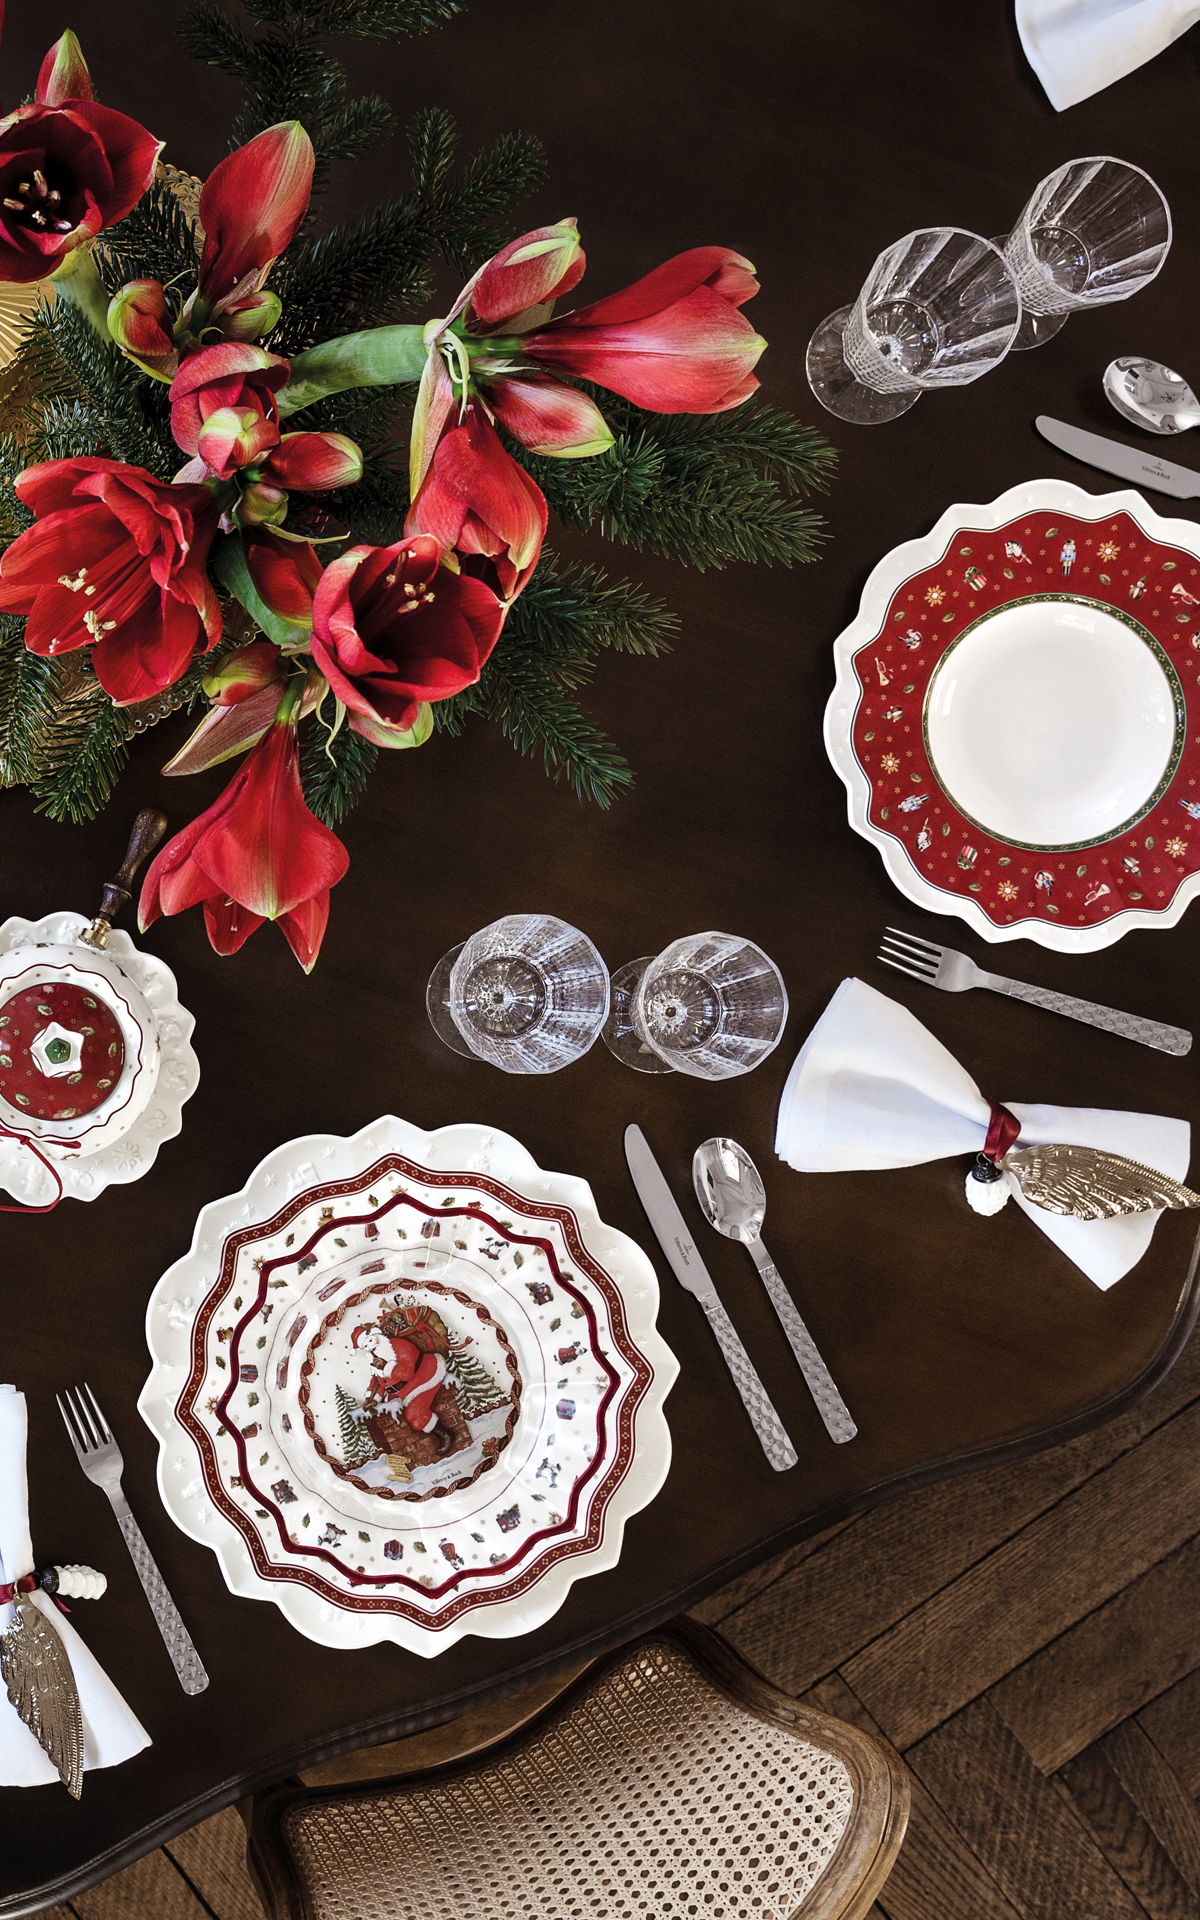 Christmas crockery from Villeroy & Boch